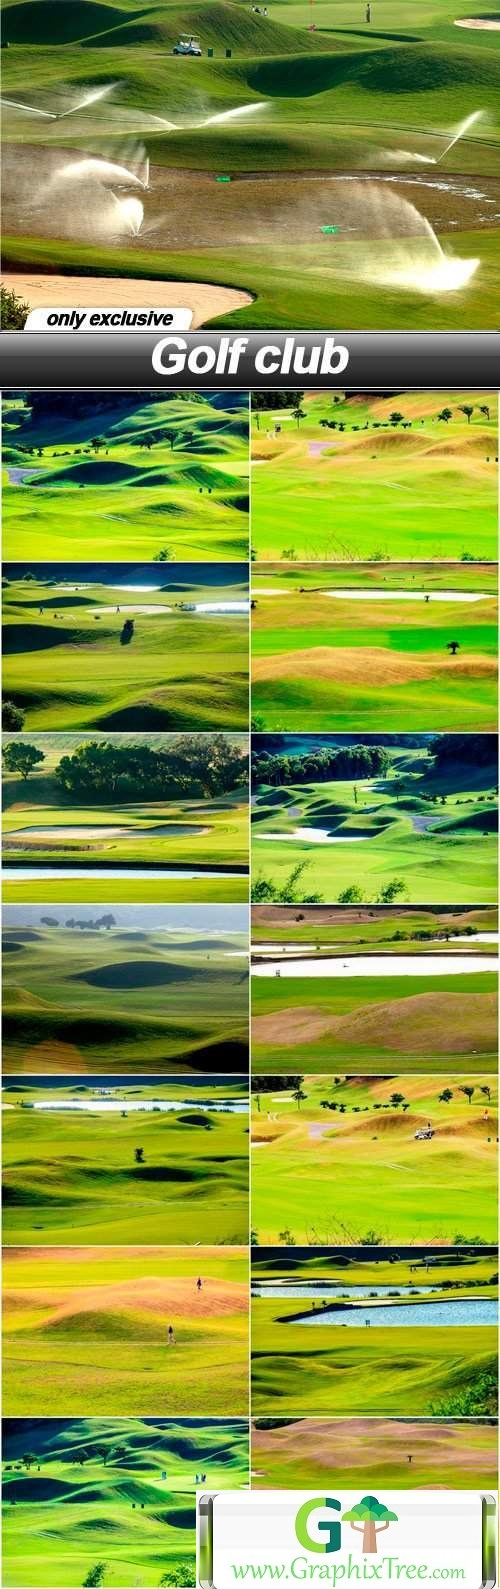 Golf club - 15 UHQ JPEG